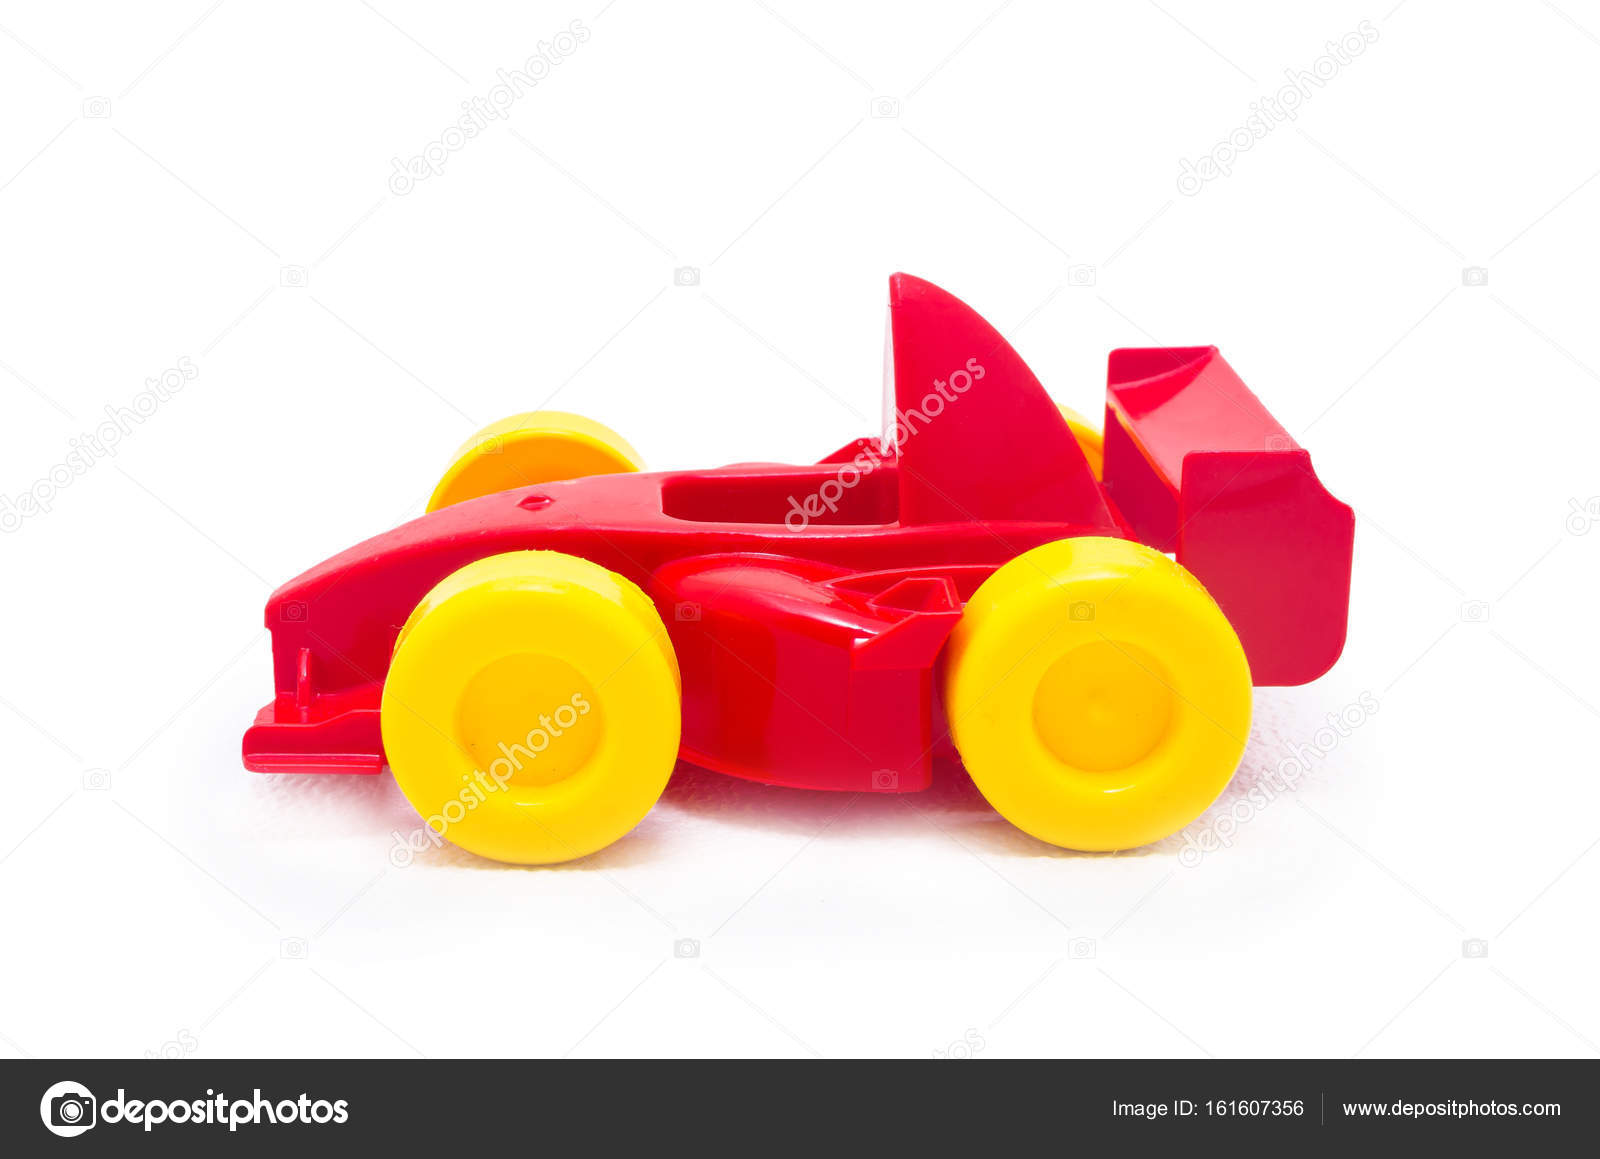 Plastic Red Racing Toy Car Toy With Yellow Wheels Stock Photo